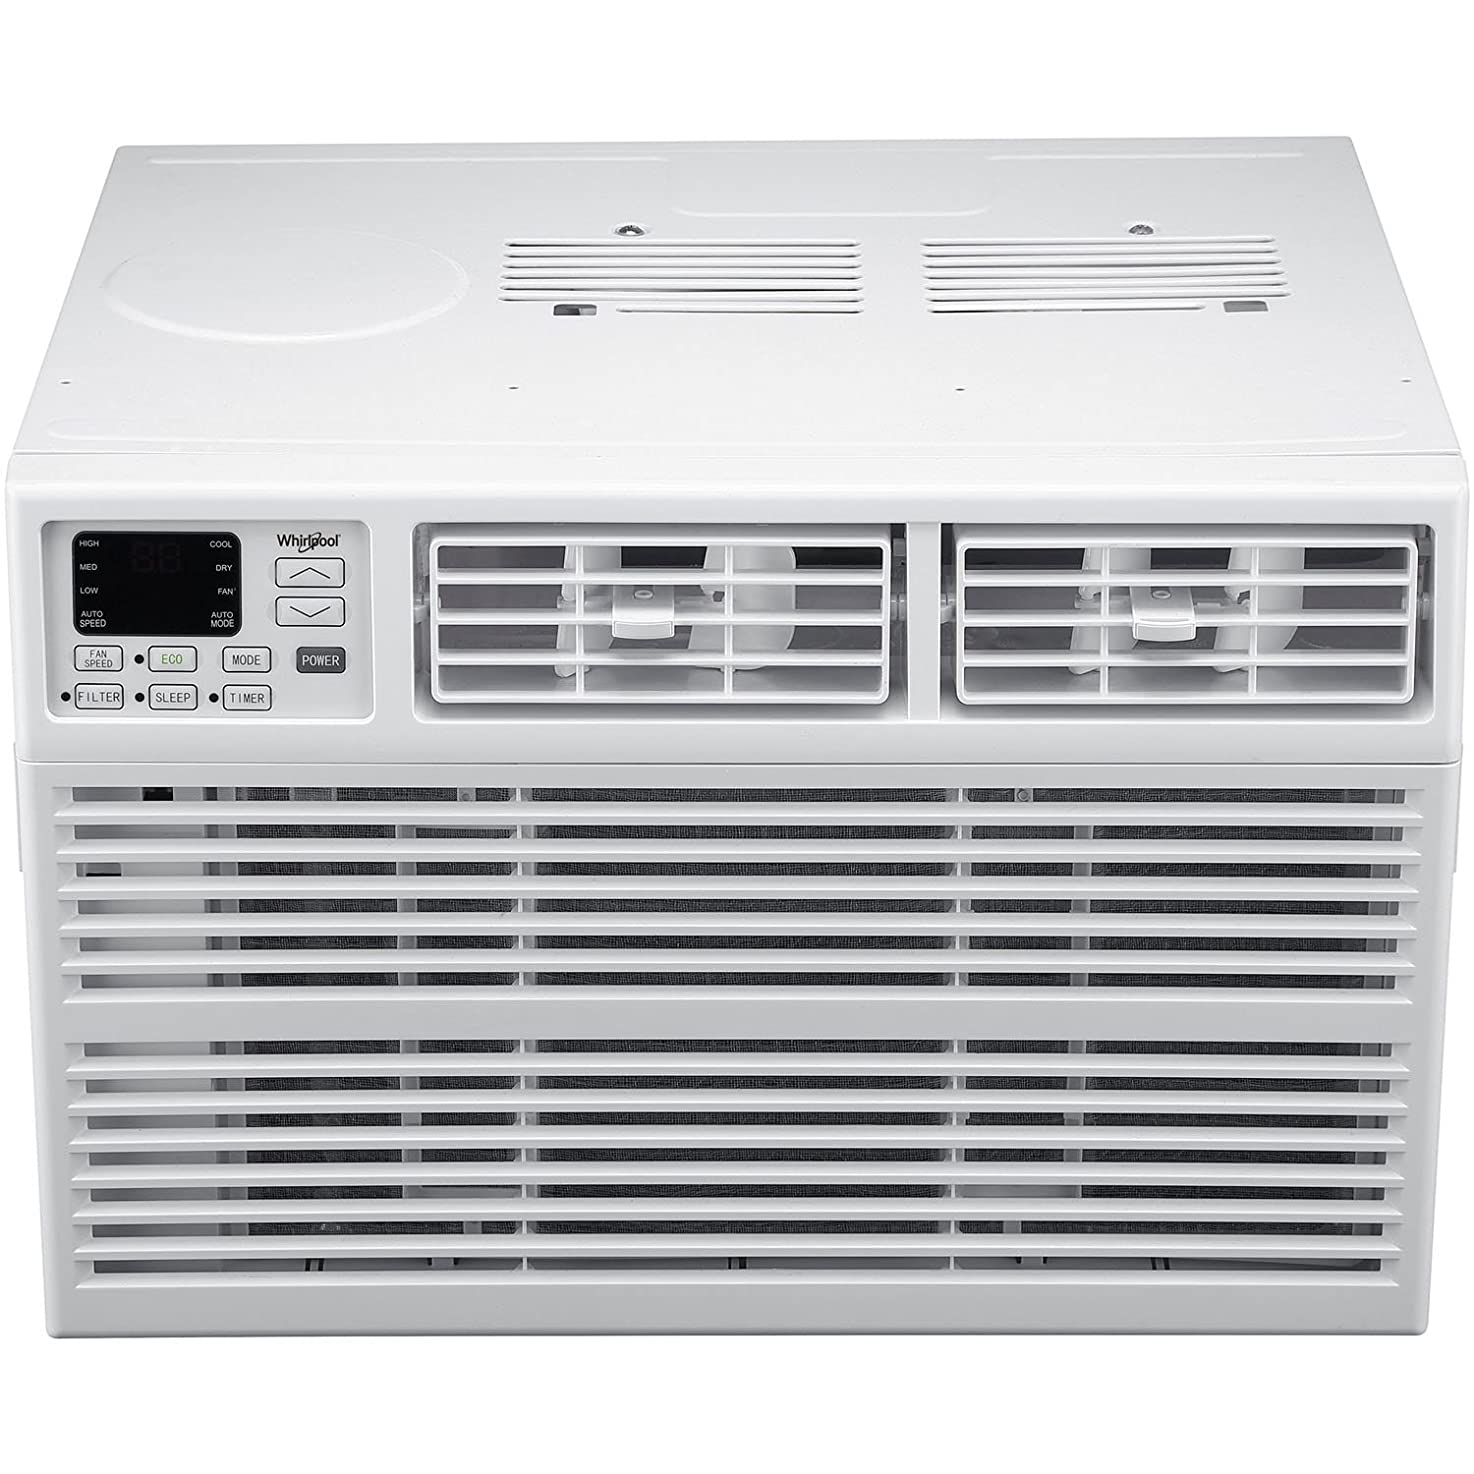 Whirlpool Energy Star 15,000 BTU 115V Window-Mounted Air Conditioner with Remote Control, White ljivagwlsfevm0